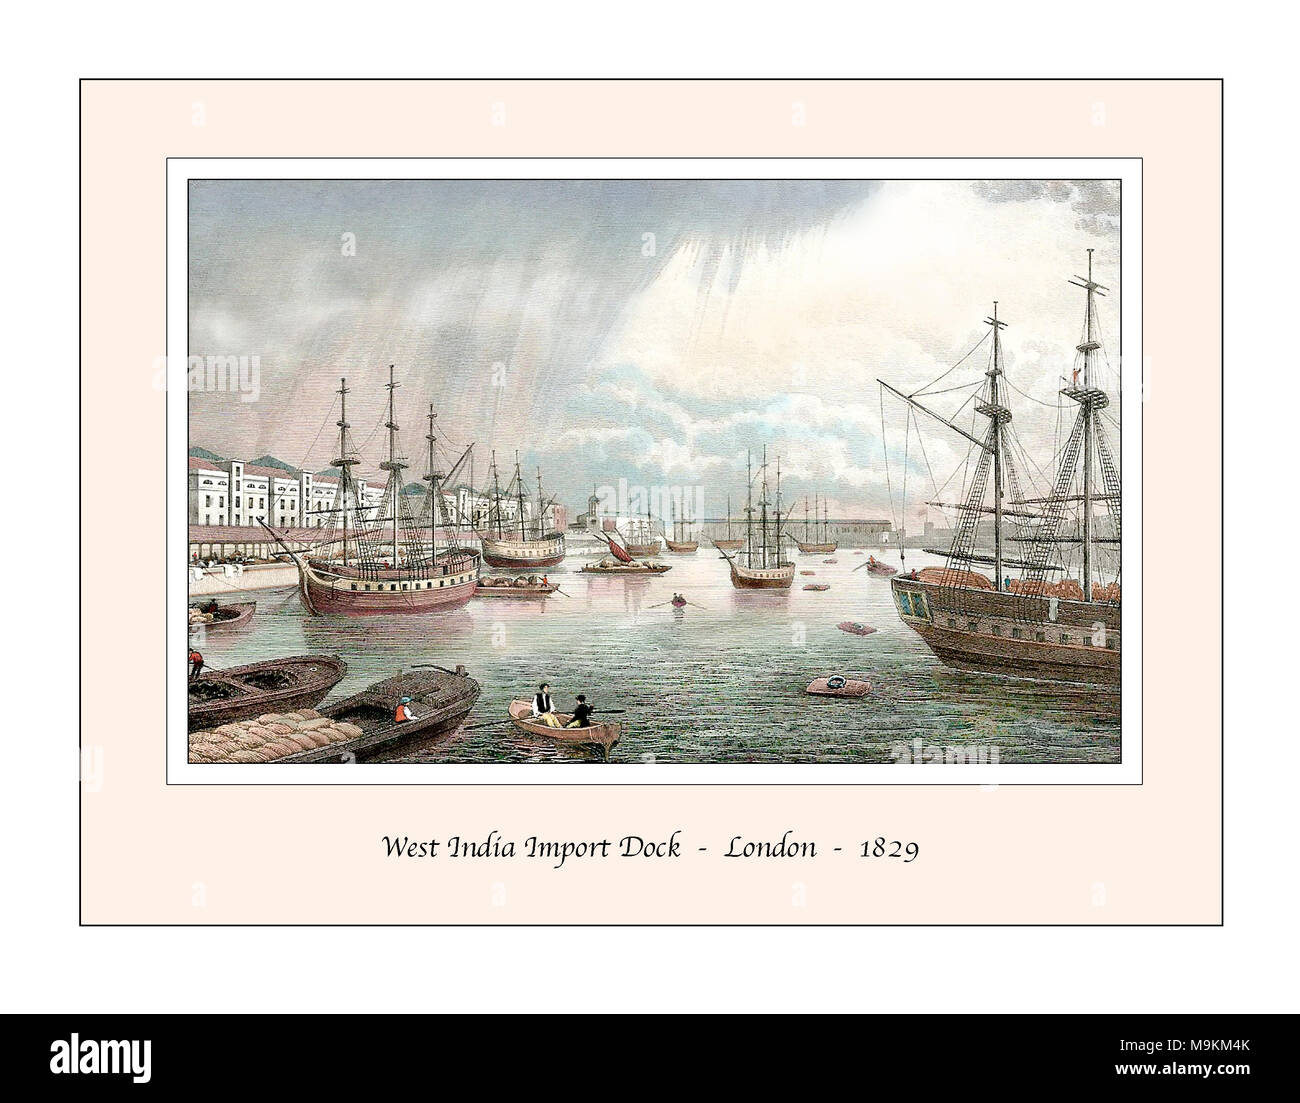 West India Dock London Original Design from a 19th century Engraving - Stock Image